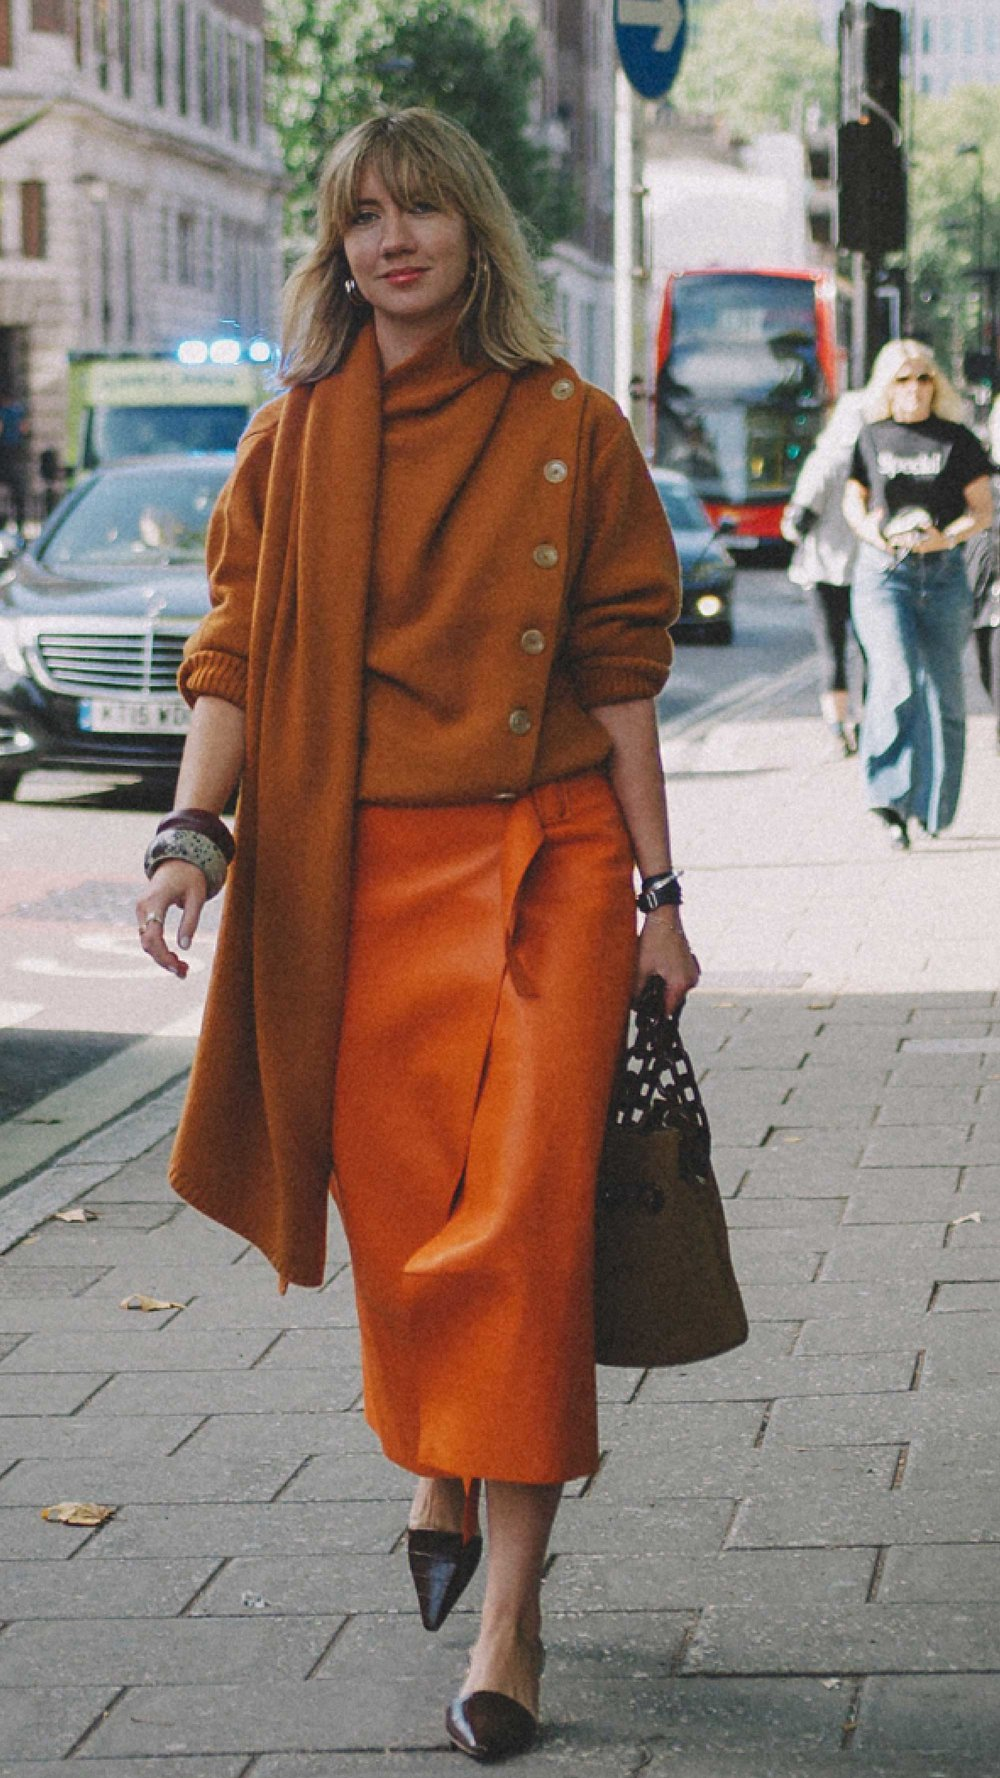 London Fashion Week Street Style Photos Day One SS18 Outfit Inspiration6.jpg